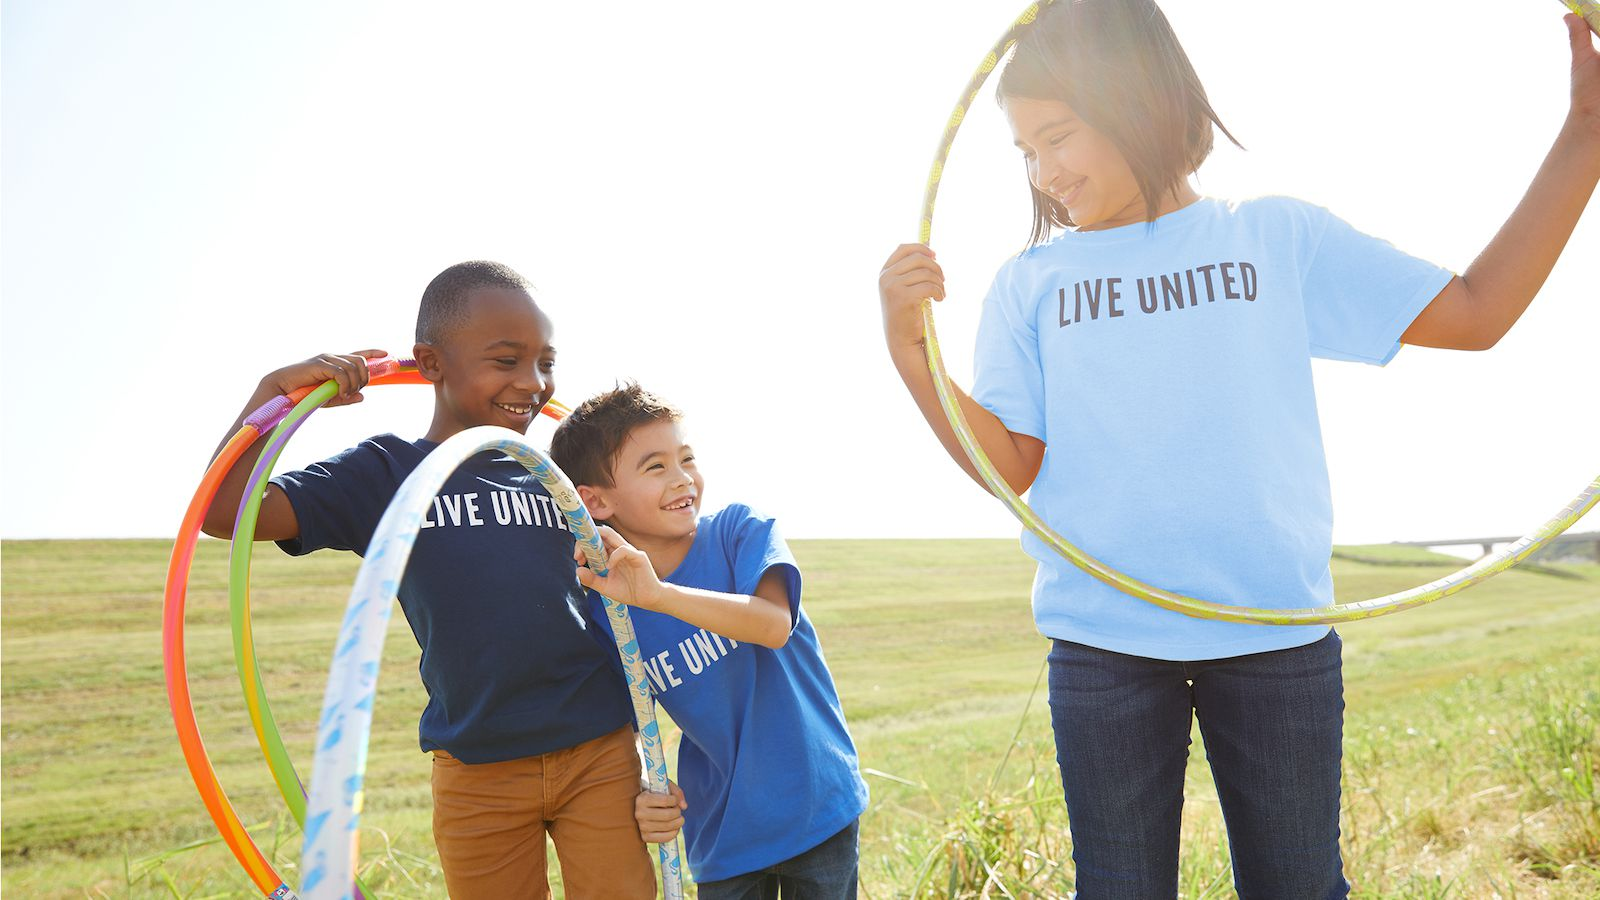 """""""When we Live United,"""" says Jennifer Sampson, McDermott-Templeton president and CEO of United Way Dallas, """"we can build a future for North Texans in which all students graduate from high school prepared to succeed in college or career; all neighbors are able to find and maintain work that provides financial stability; and all families have access to physical and mental health care to lead long, healthy lives."""""""